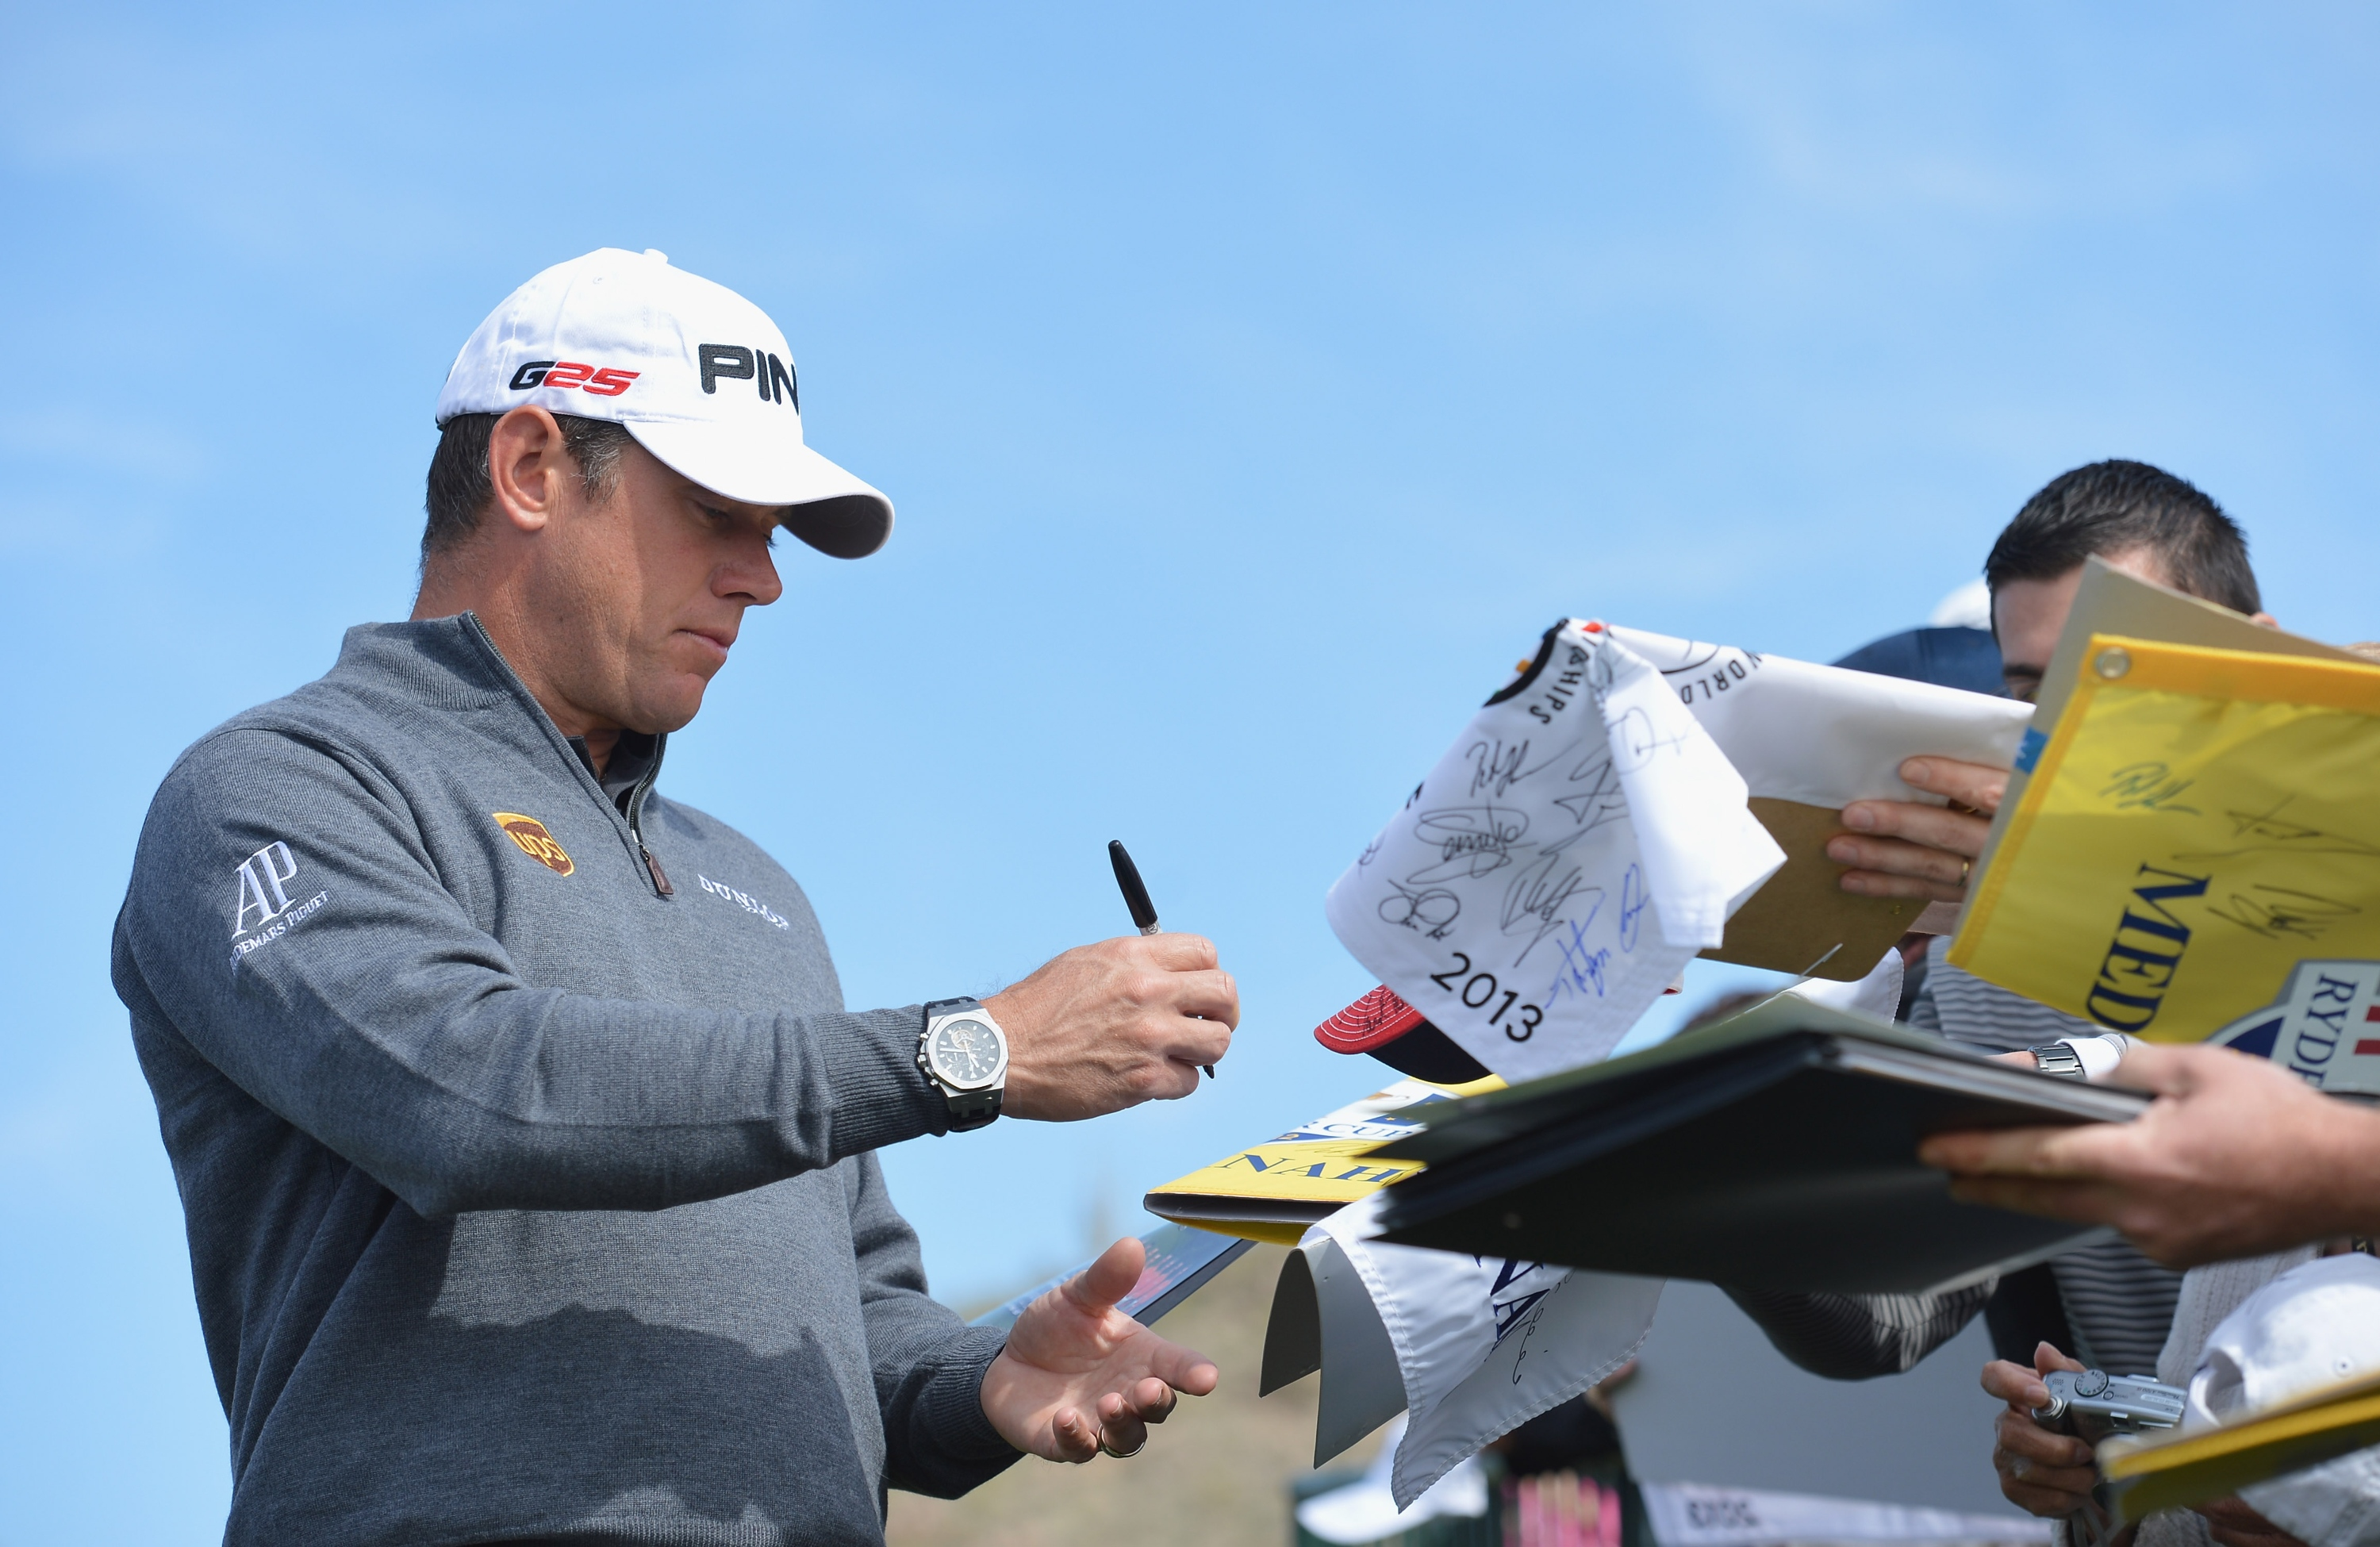 World Golf Championships-Accenture Match Play Championship - Previews